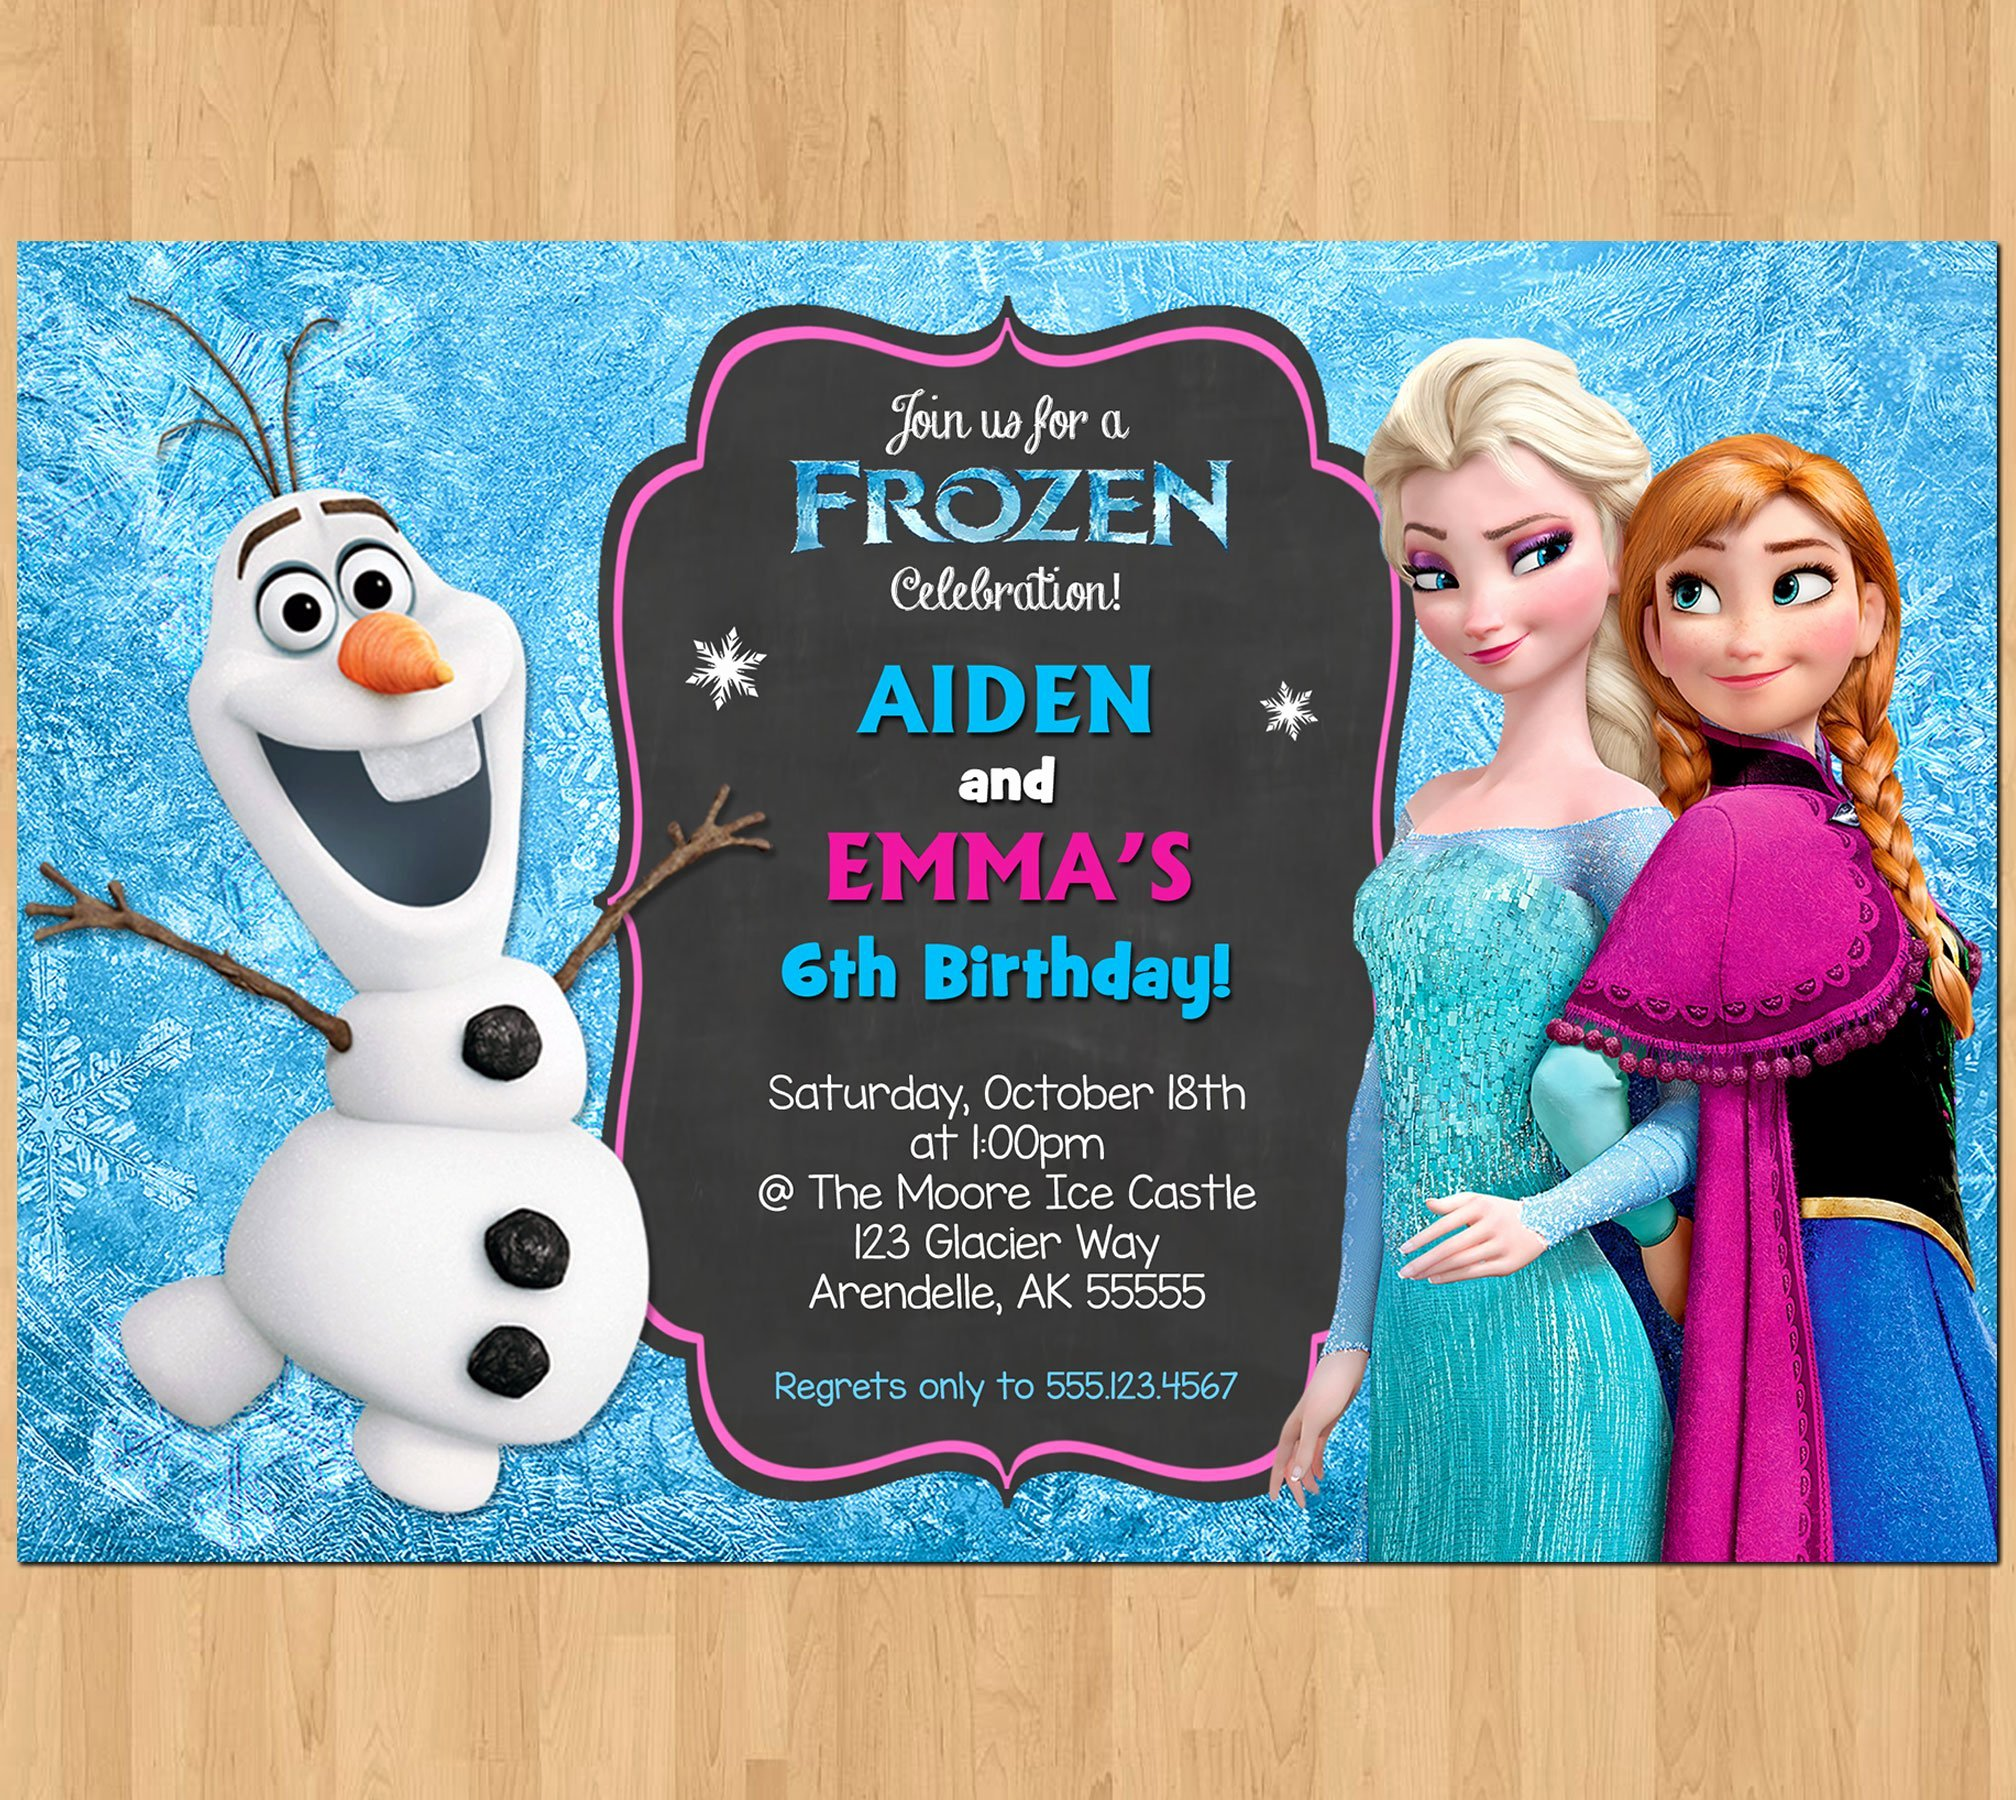 Frozen Bday Party Invitations Unique Sibling Birthday Invitation Frozen Invitation Olaf Elsa Anna Double